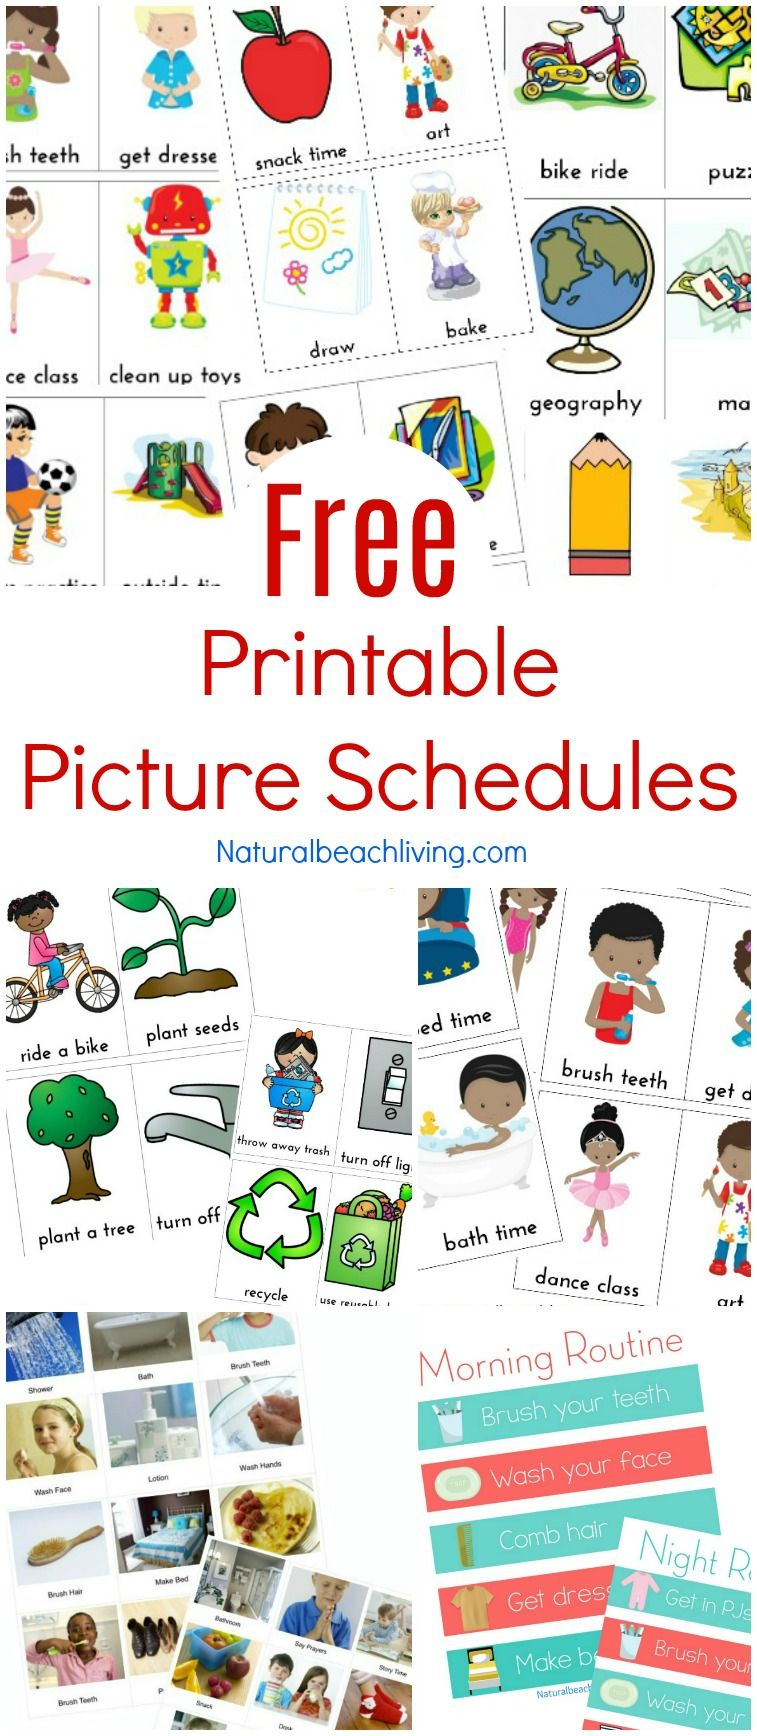 Free Printable Picture Schedule Cards - Visual Schedule Printables - Free Printable Schedule Cards For Preschool